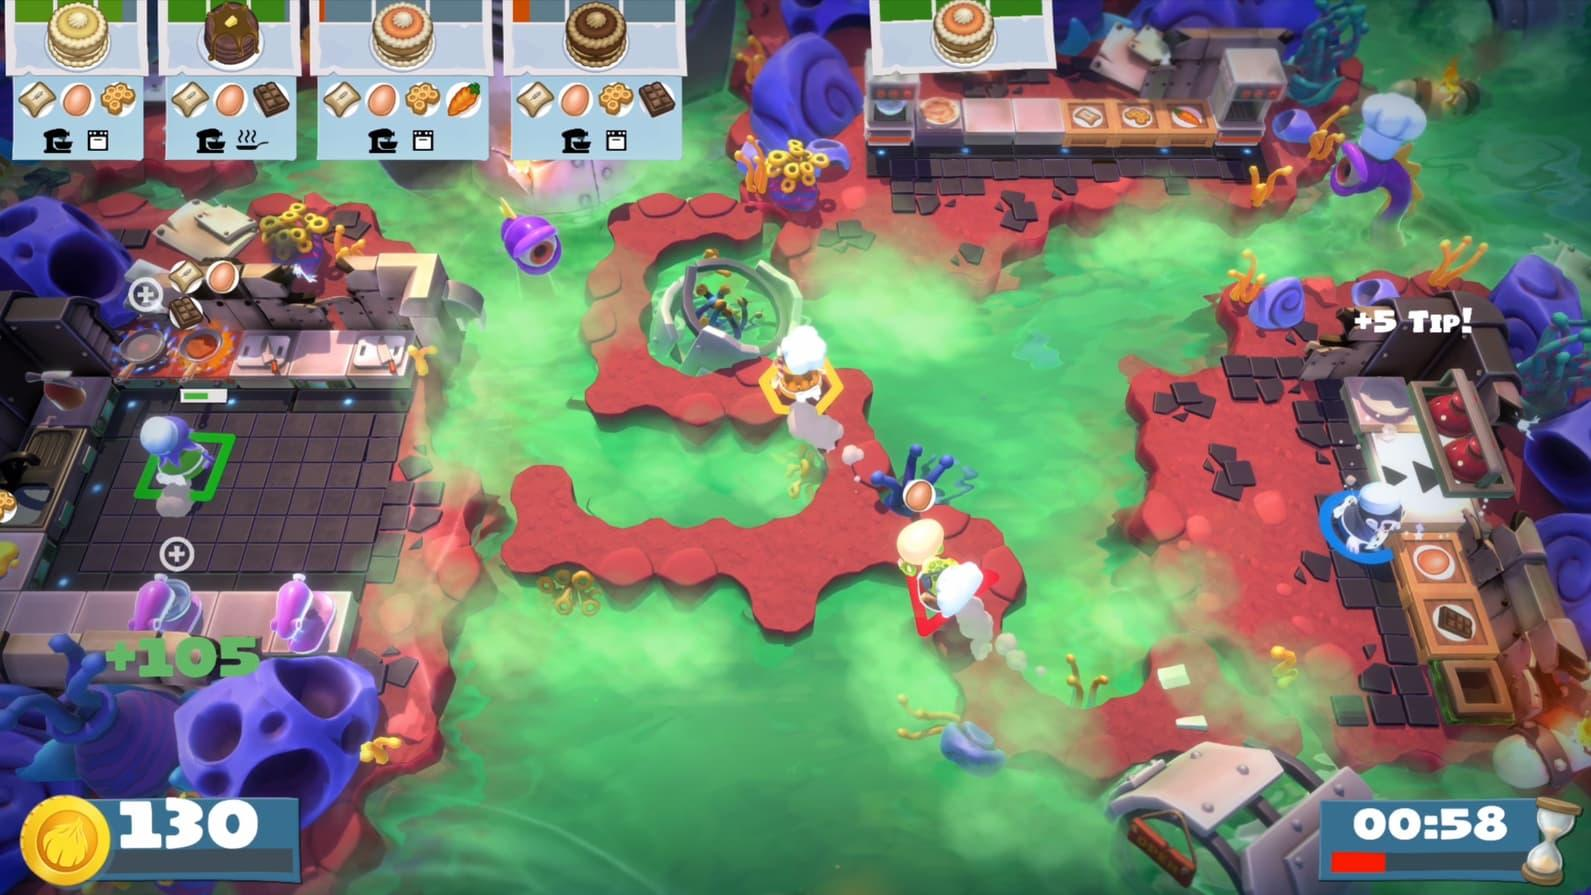 'Overcooked: All You Can Eat' is coming to PS4, Xbox One, Switch and PC - Engadget